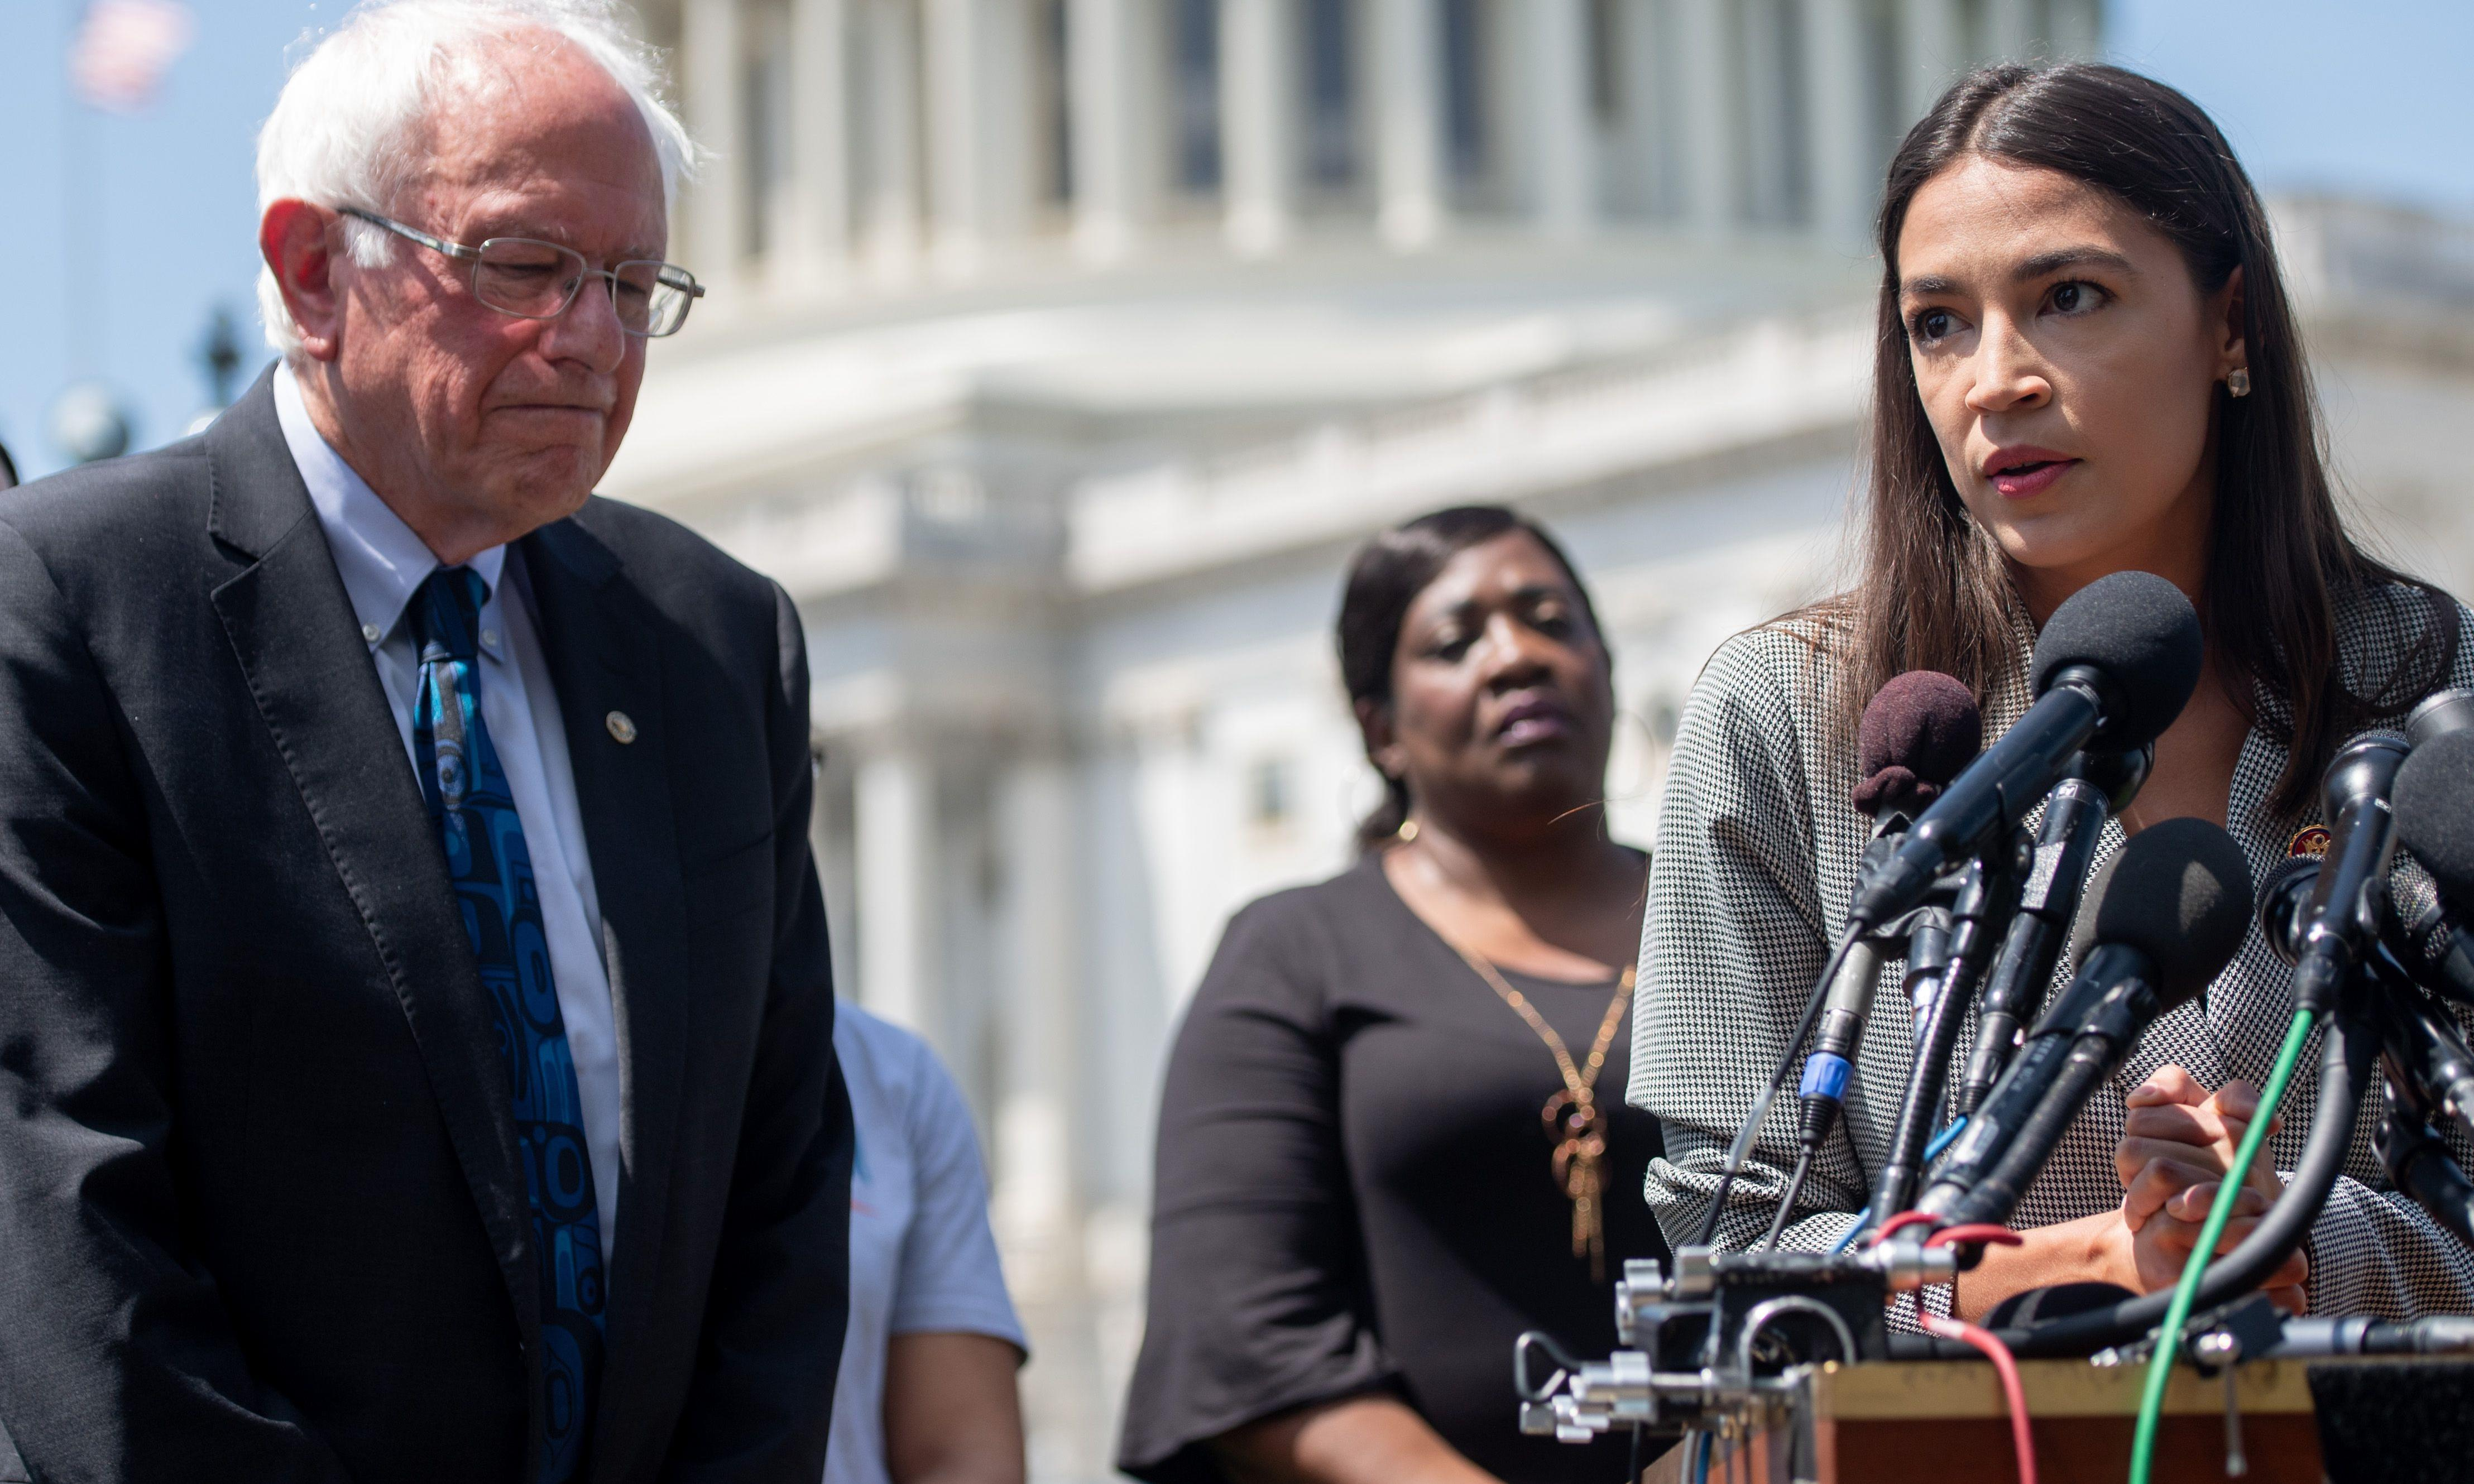 Ocasio-Cortez endorsement gives Sanders shot in the arm at critical time